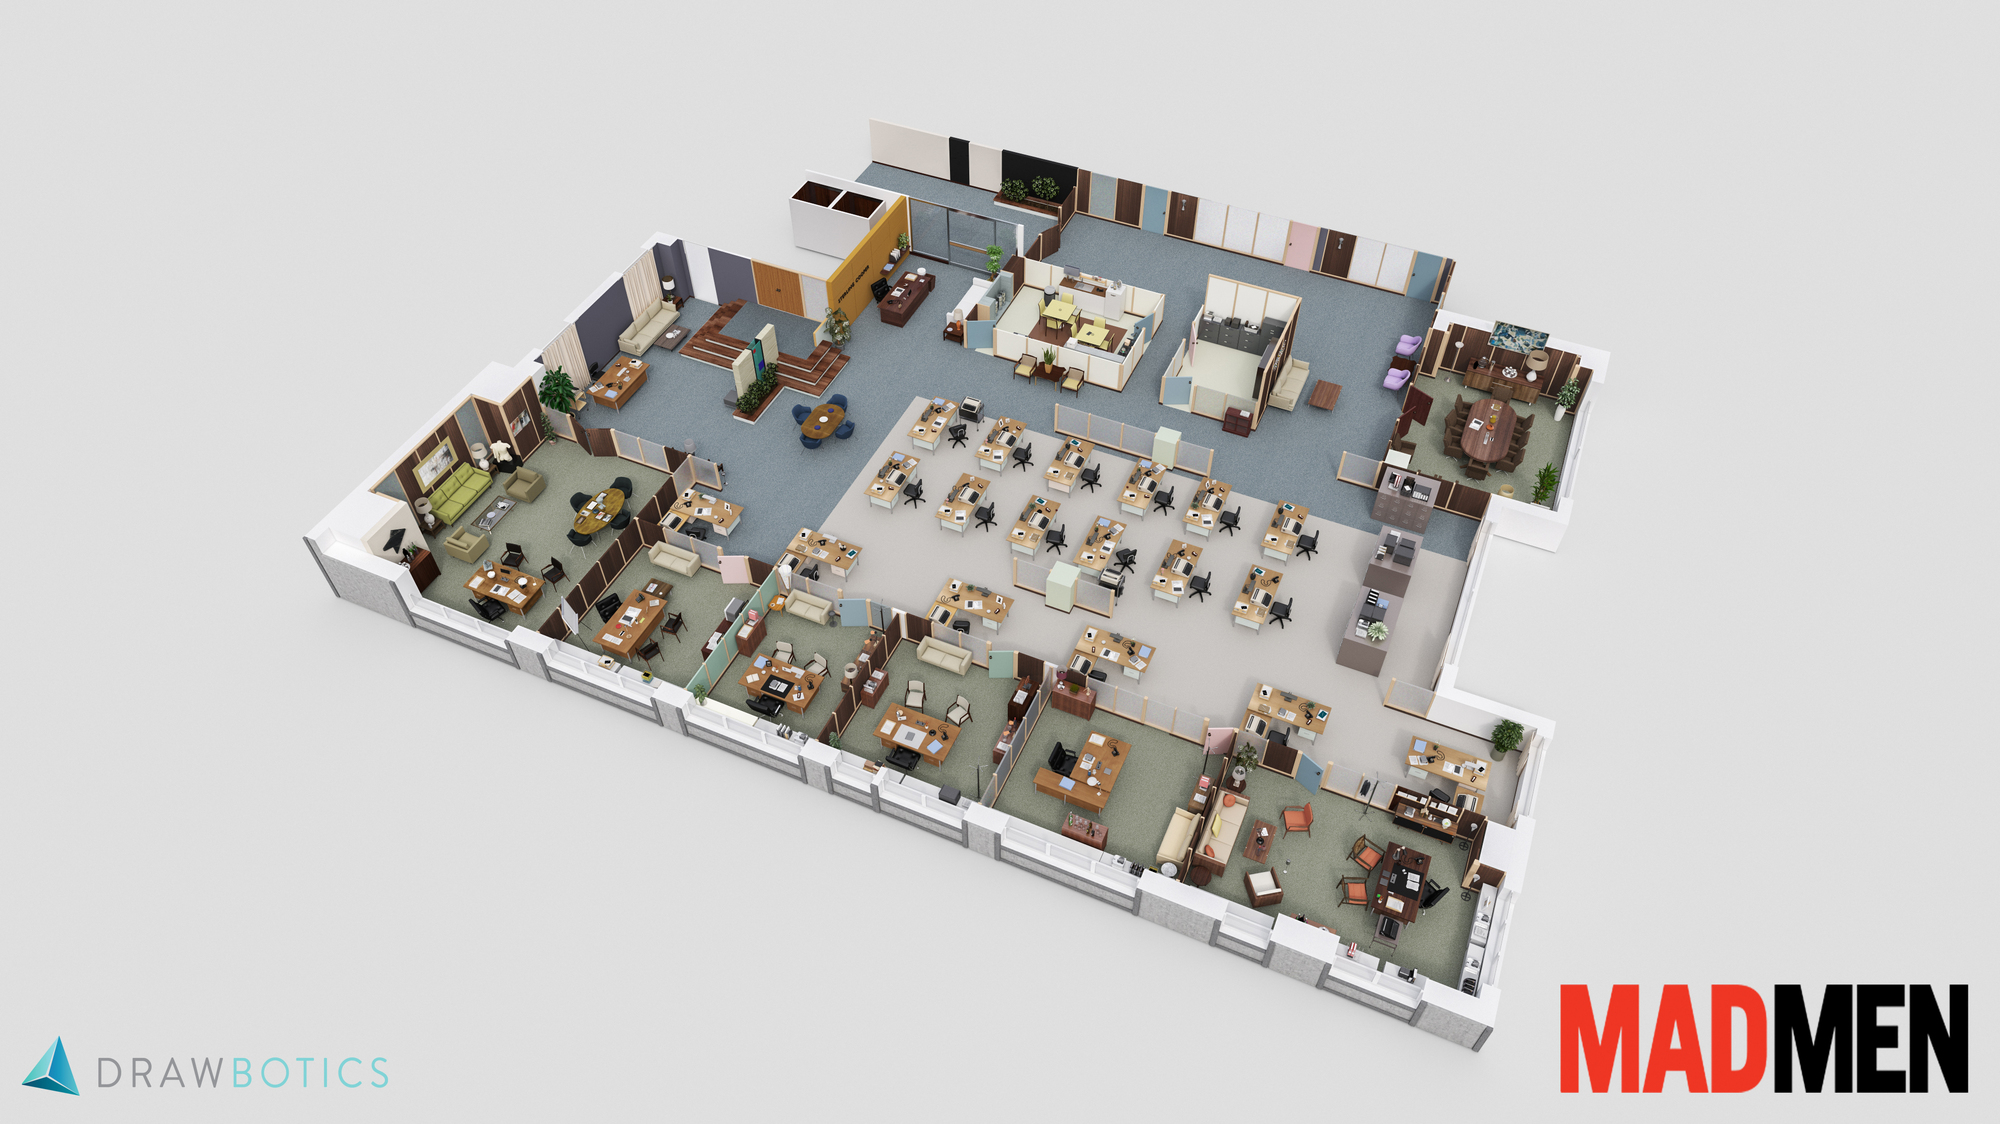 5894c477e58ece6ec70005f7 Parks And Rec Suits And Silicon Valley See 7 Offices From Hit Tv Shows In Detailed 3d Models Image on Dunder Mifflin Office Layout